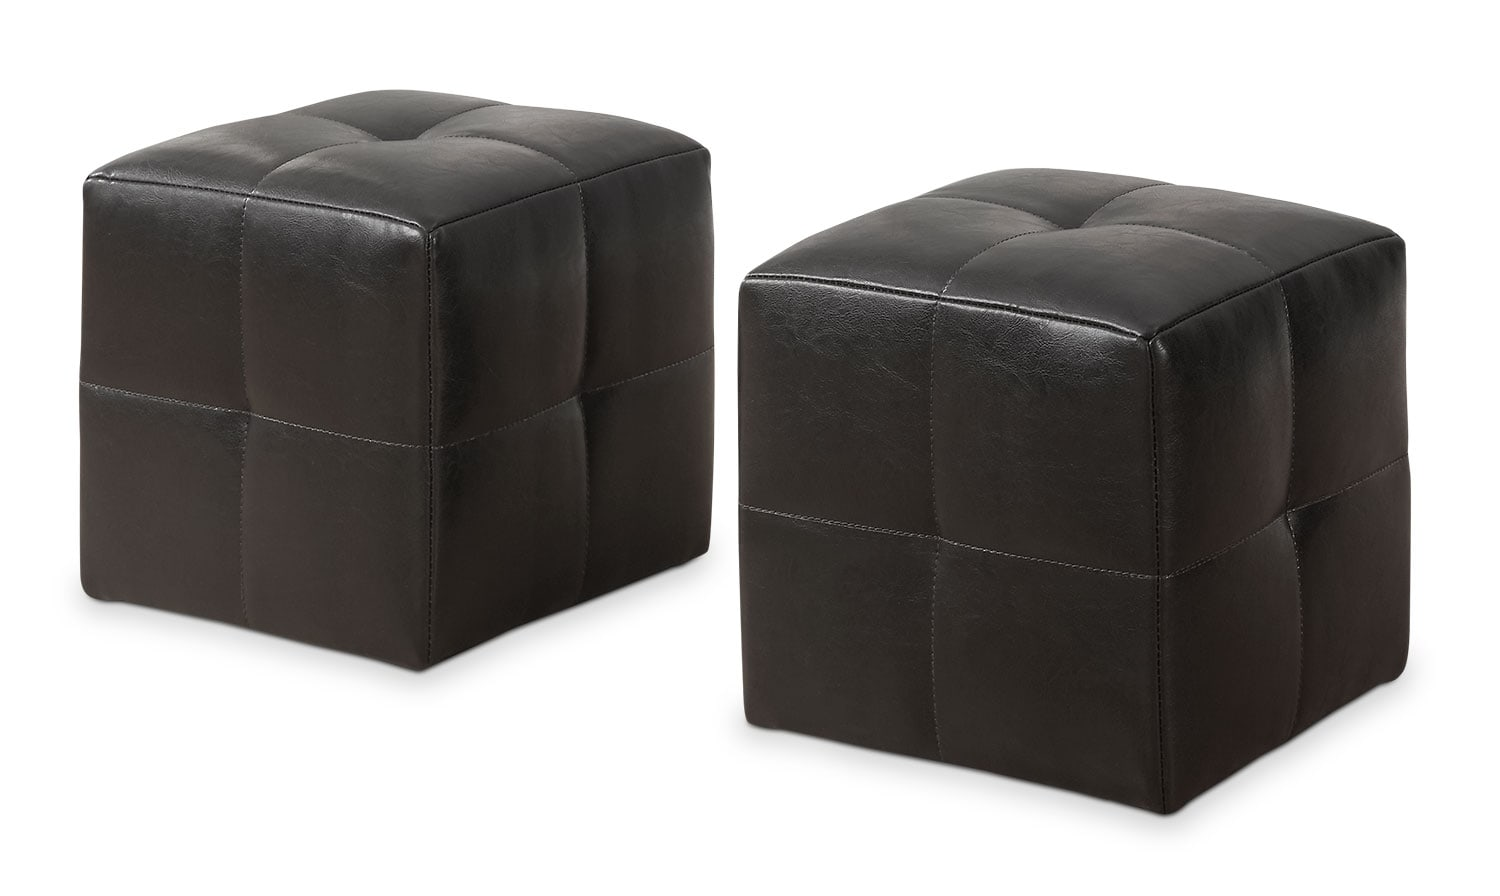 Monarch Children's 2-Piece Ottoman Set – Dark Brown